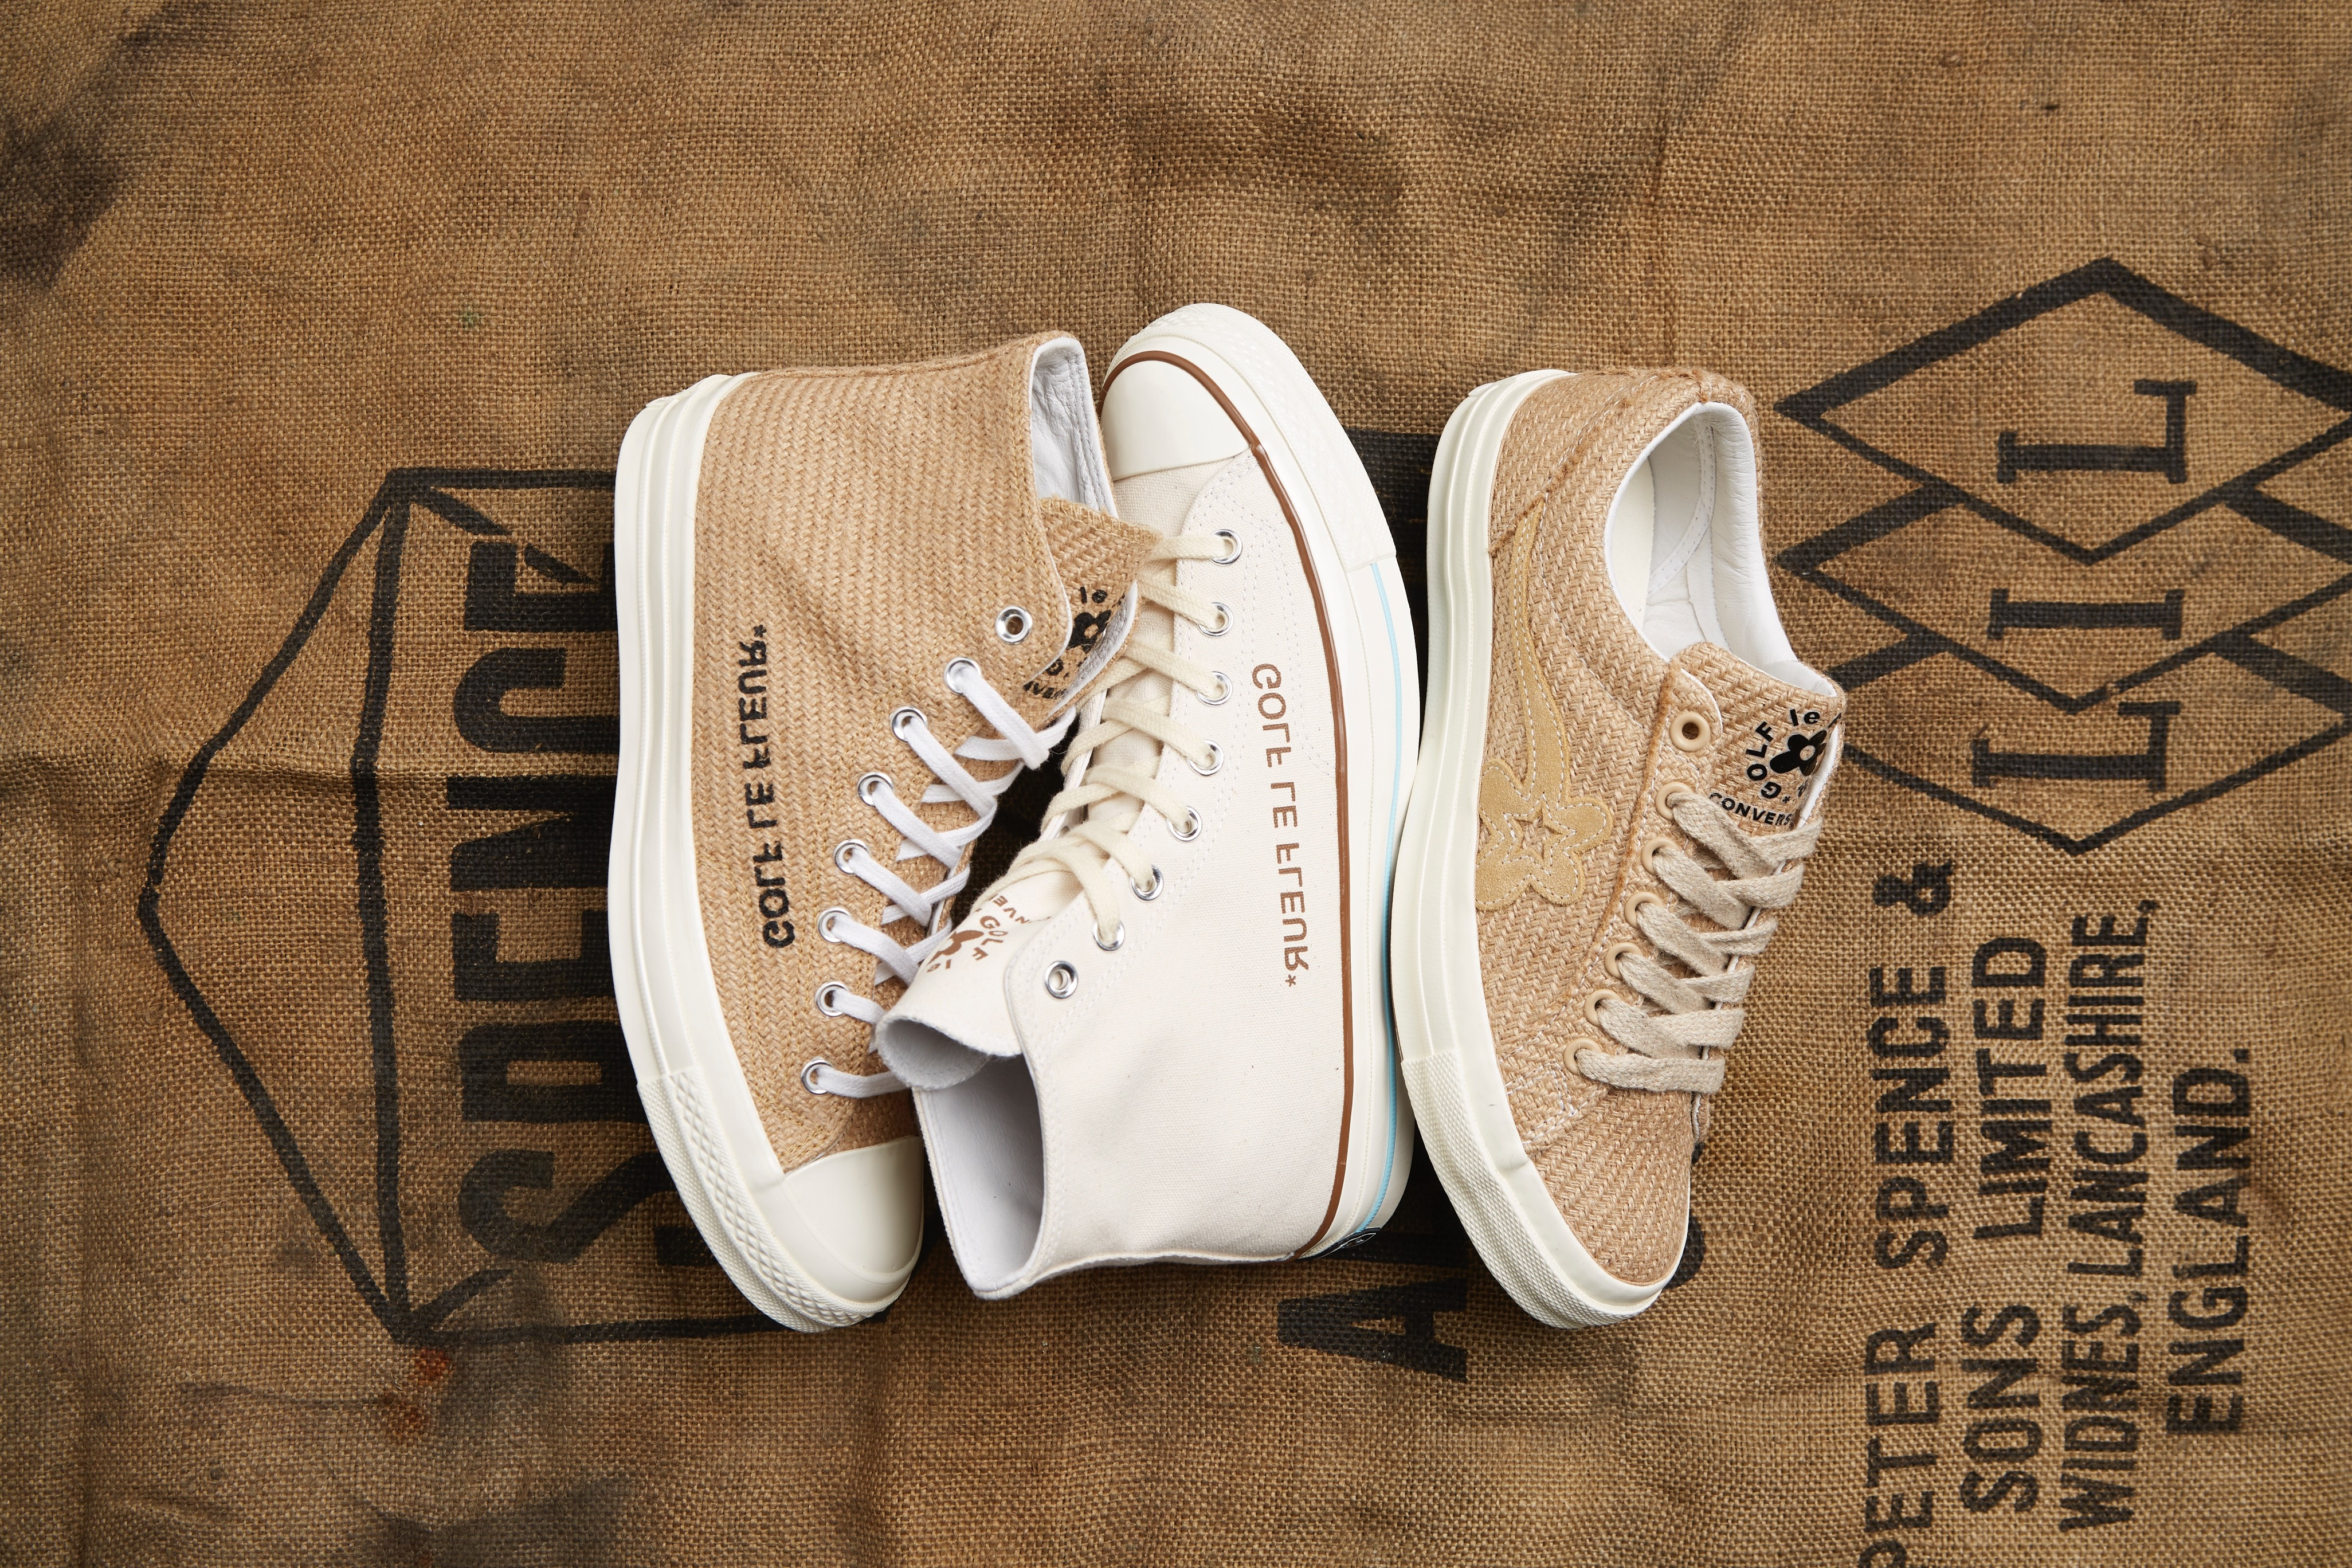 A Picture of The Converse Burlap Pack